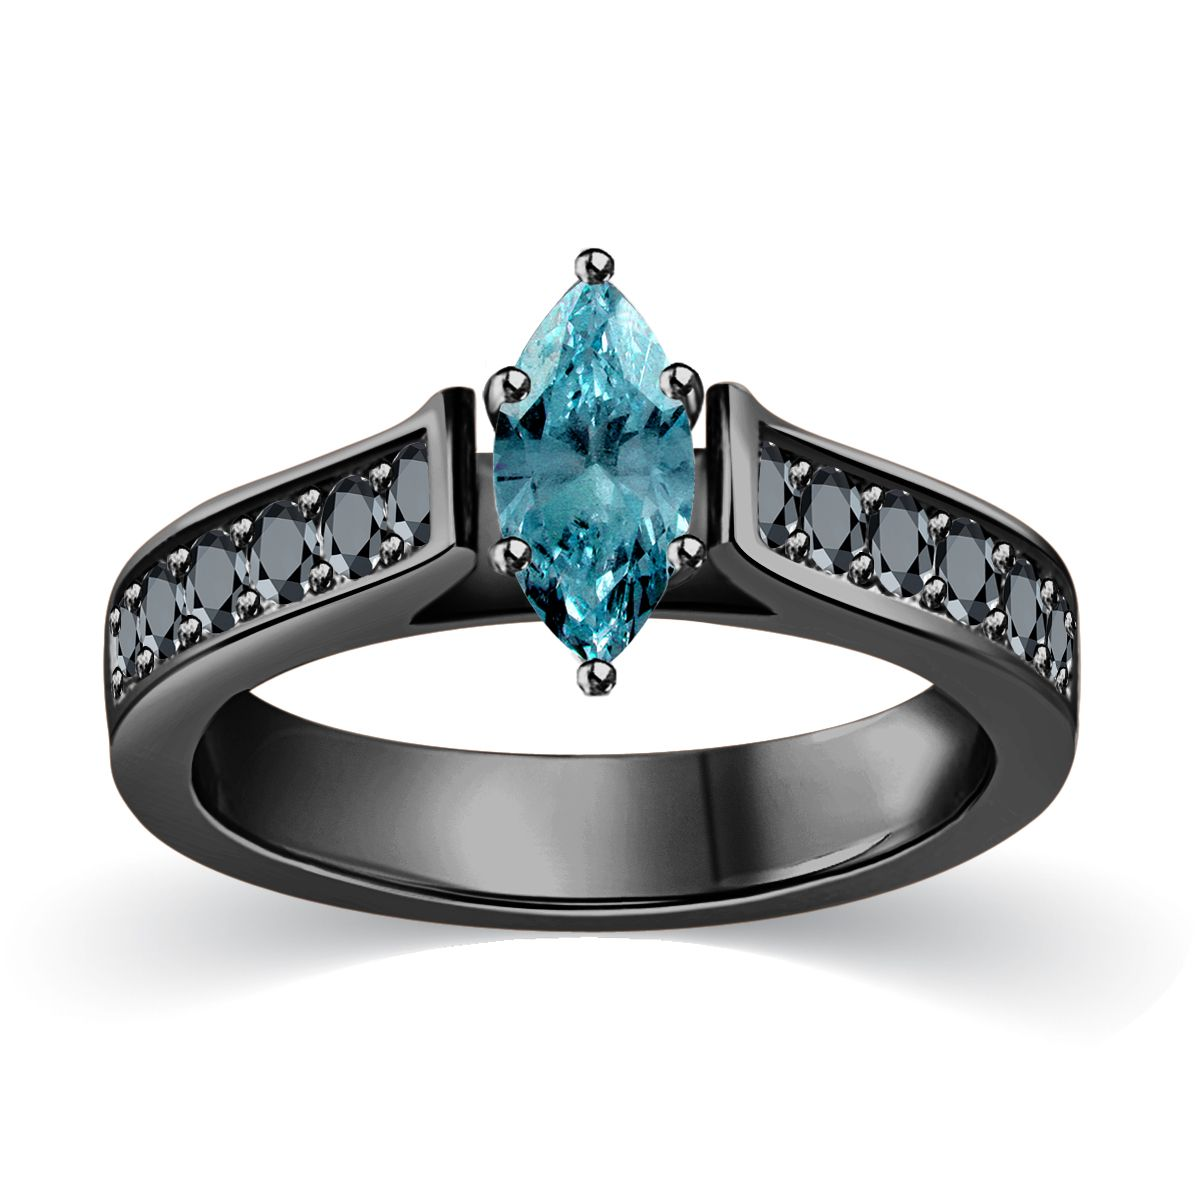 Blue and black marquise cut engagement ring in black gold she said